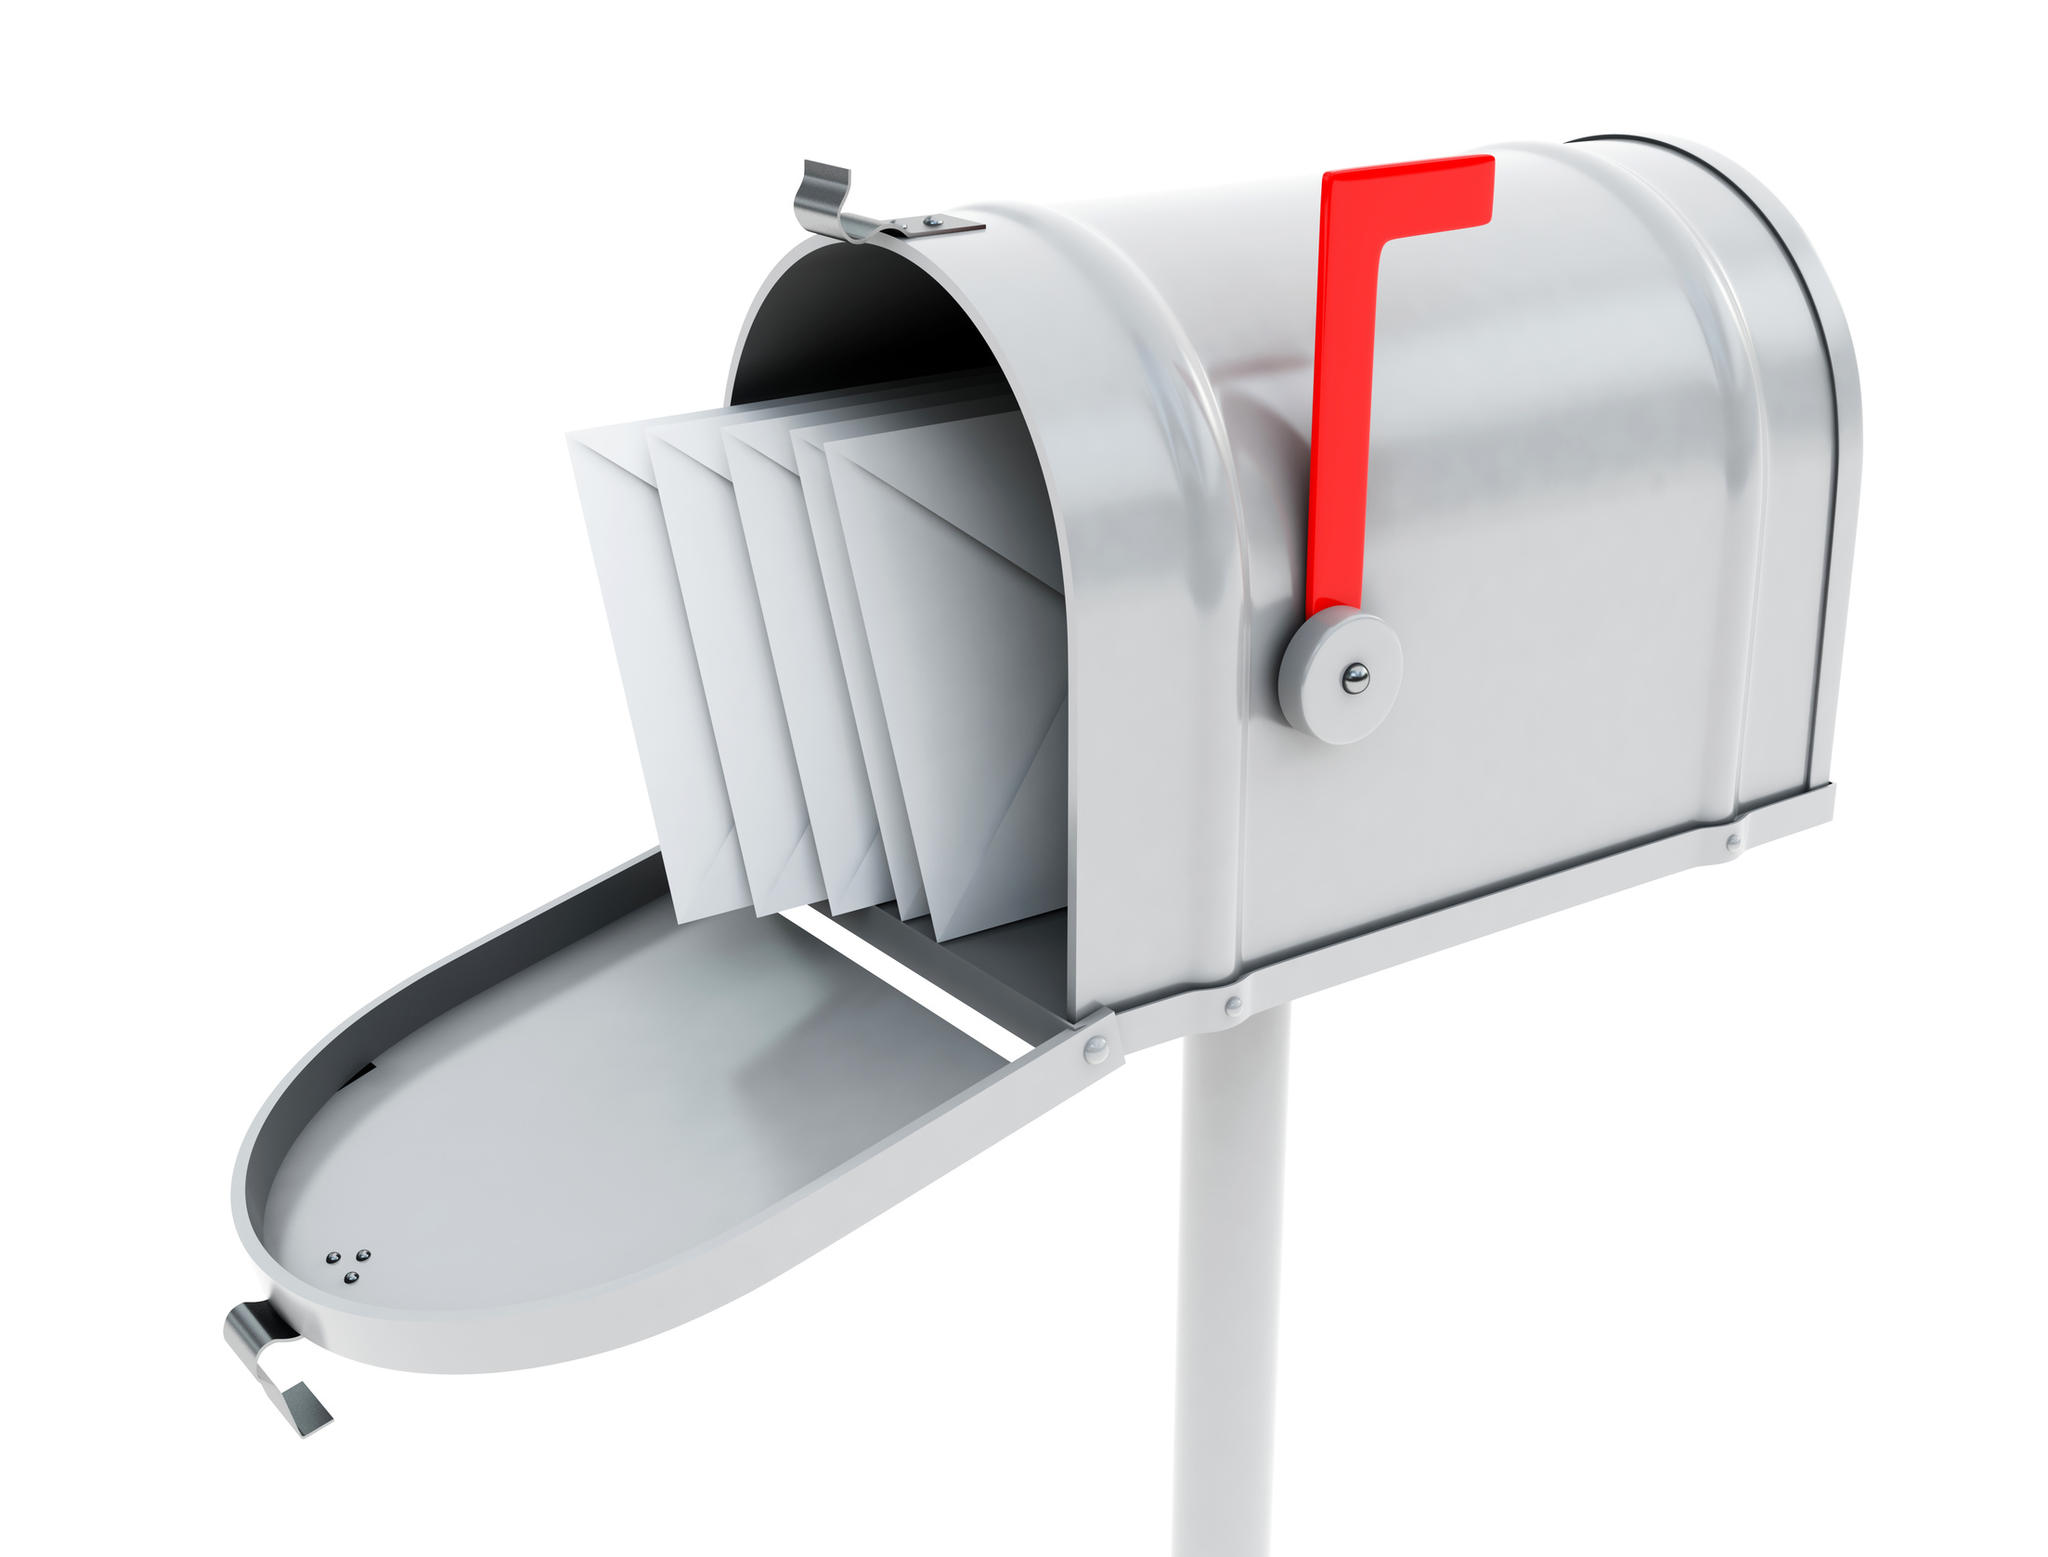 Mailbag - How Can I Dunk in Two Weeks?